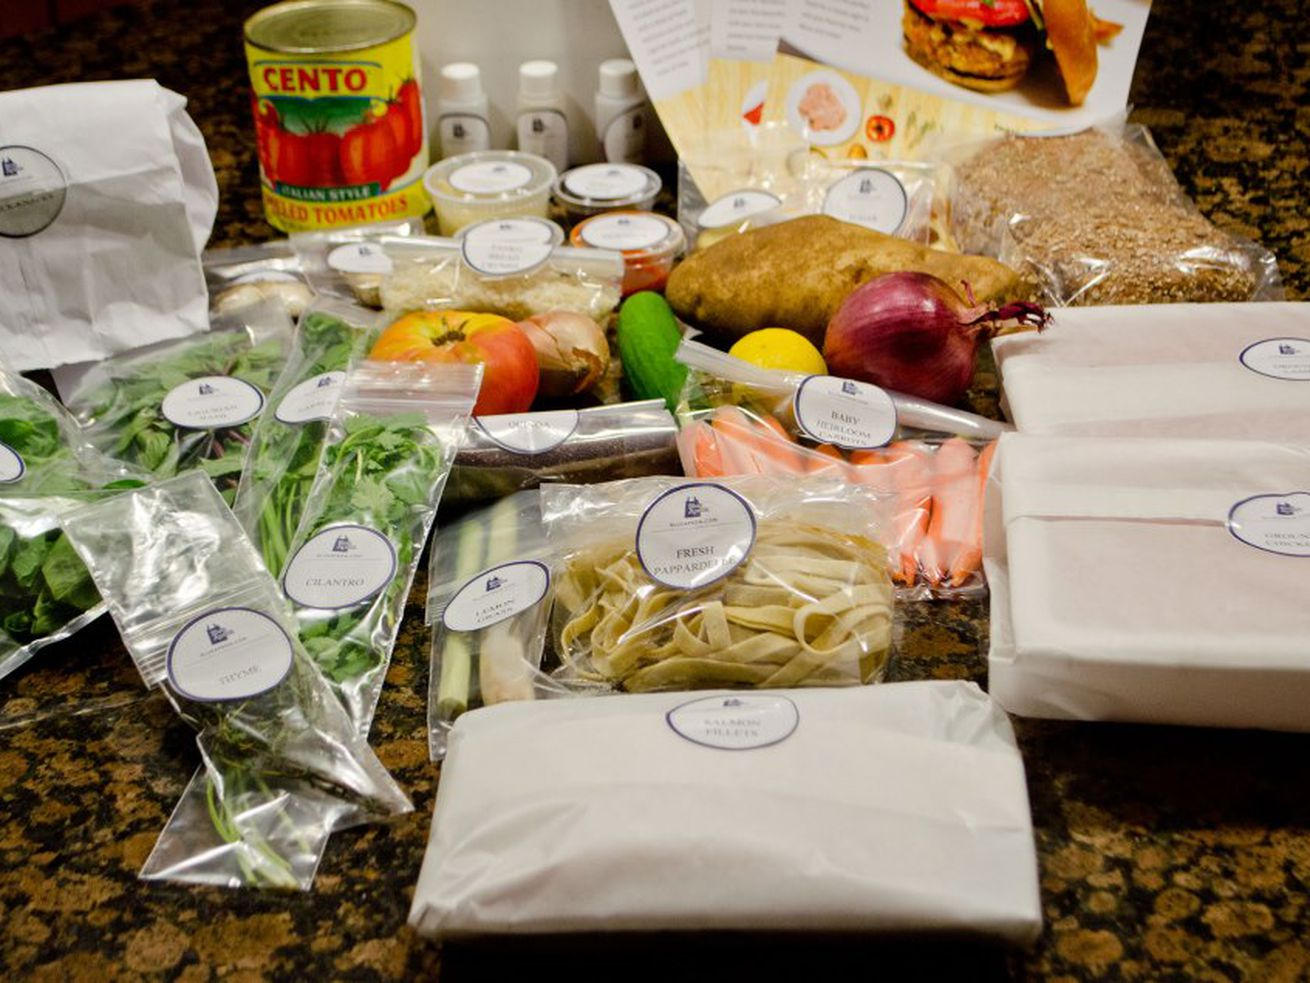 Blue apron business model